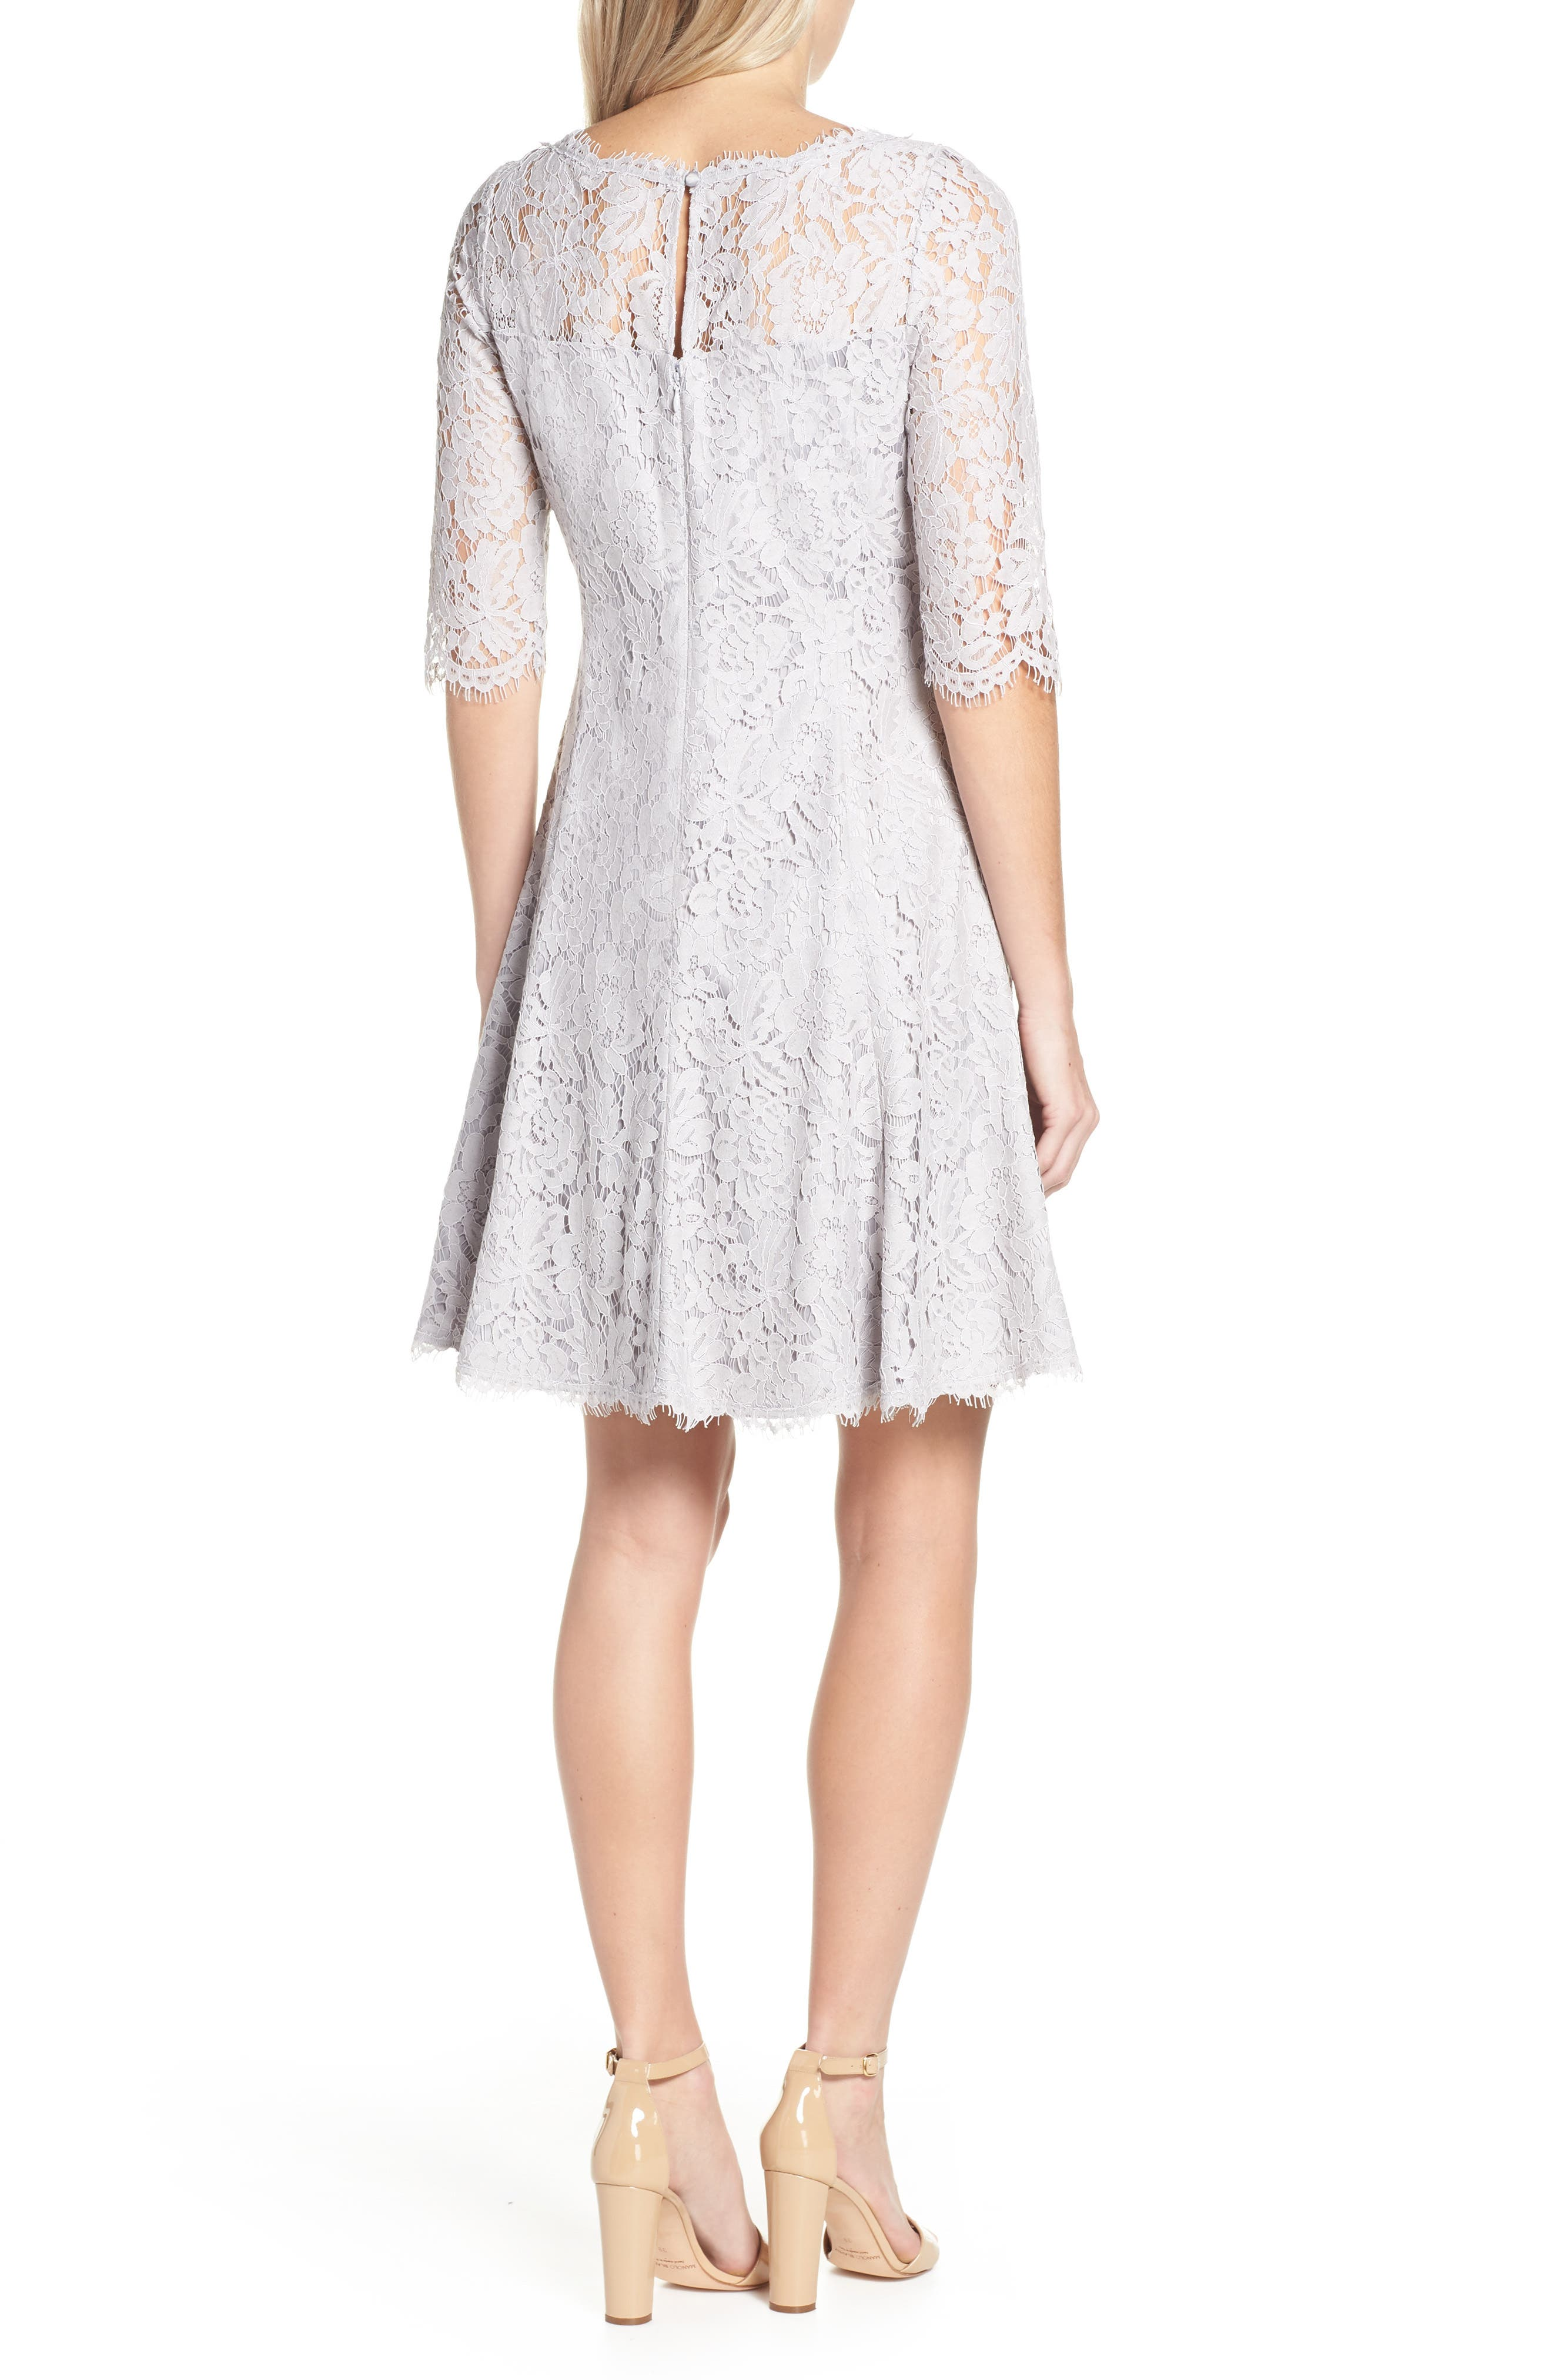 ELIZA J, Lace Fit & Flare Cocktail Dress, Alternate thumbnail 2, color, GREY